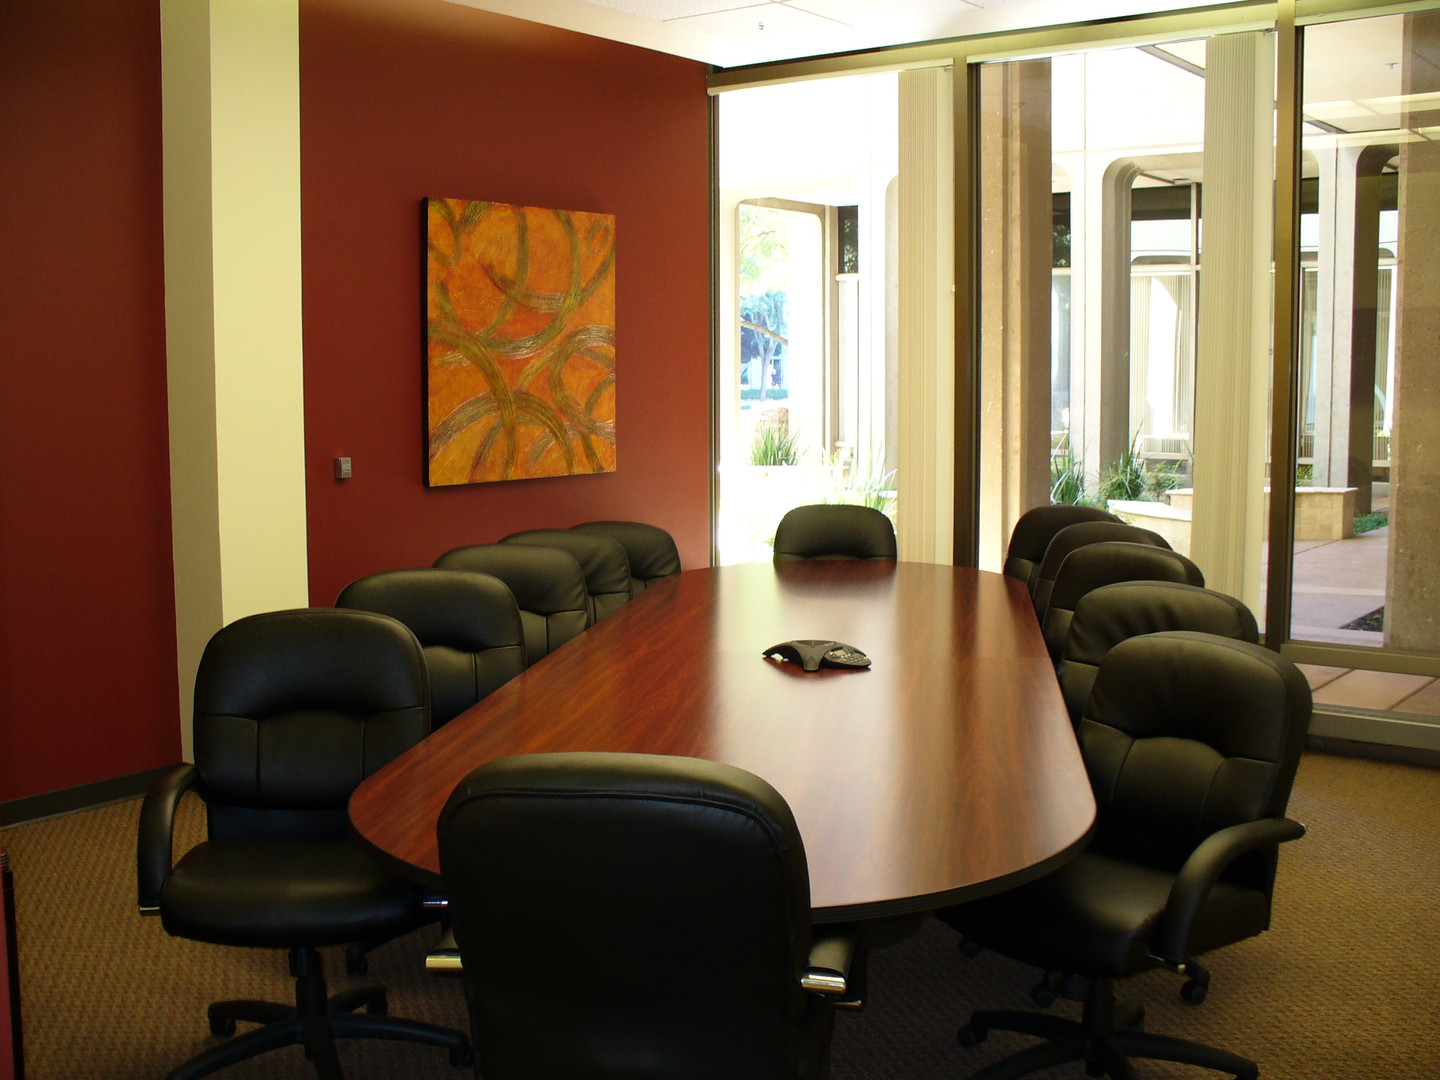 Pictures of conference rm 002.jpg